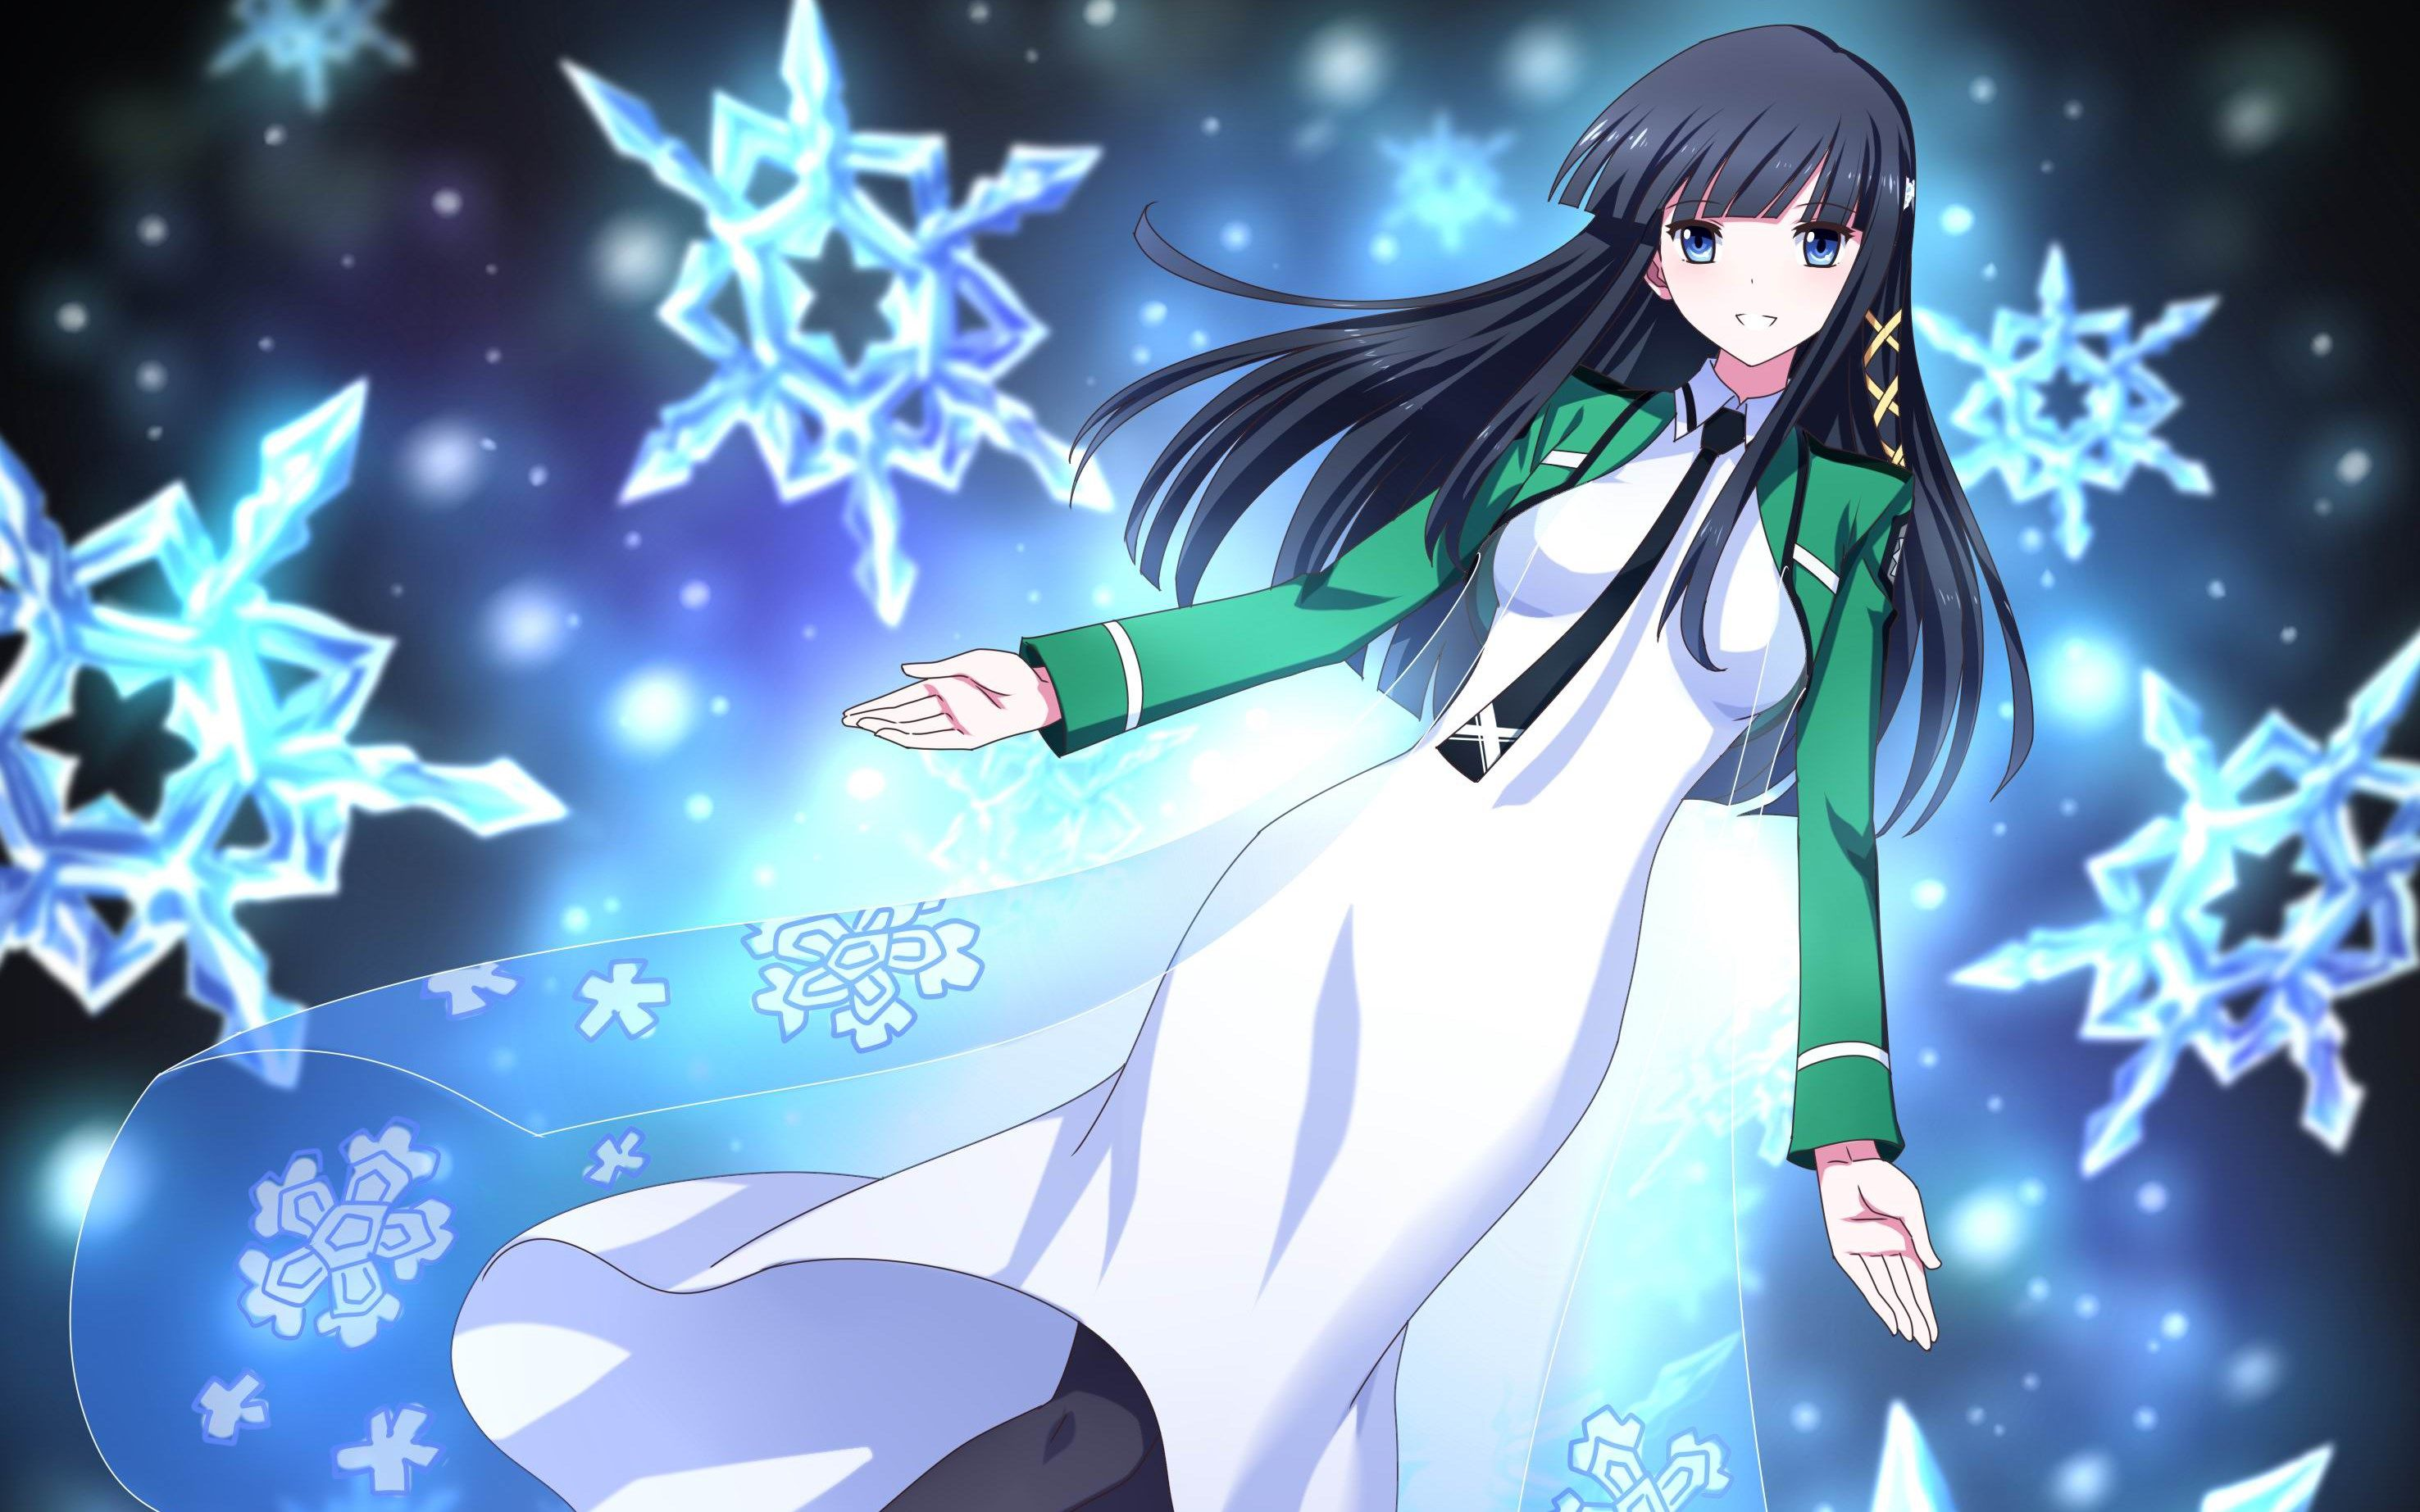 Pin on The Irregular at Magic High School